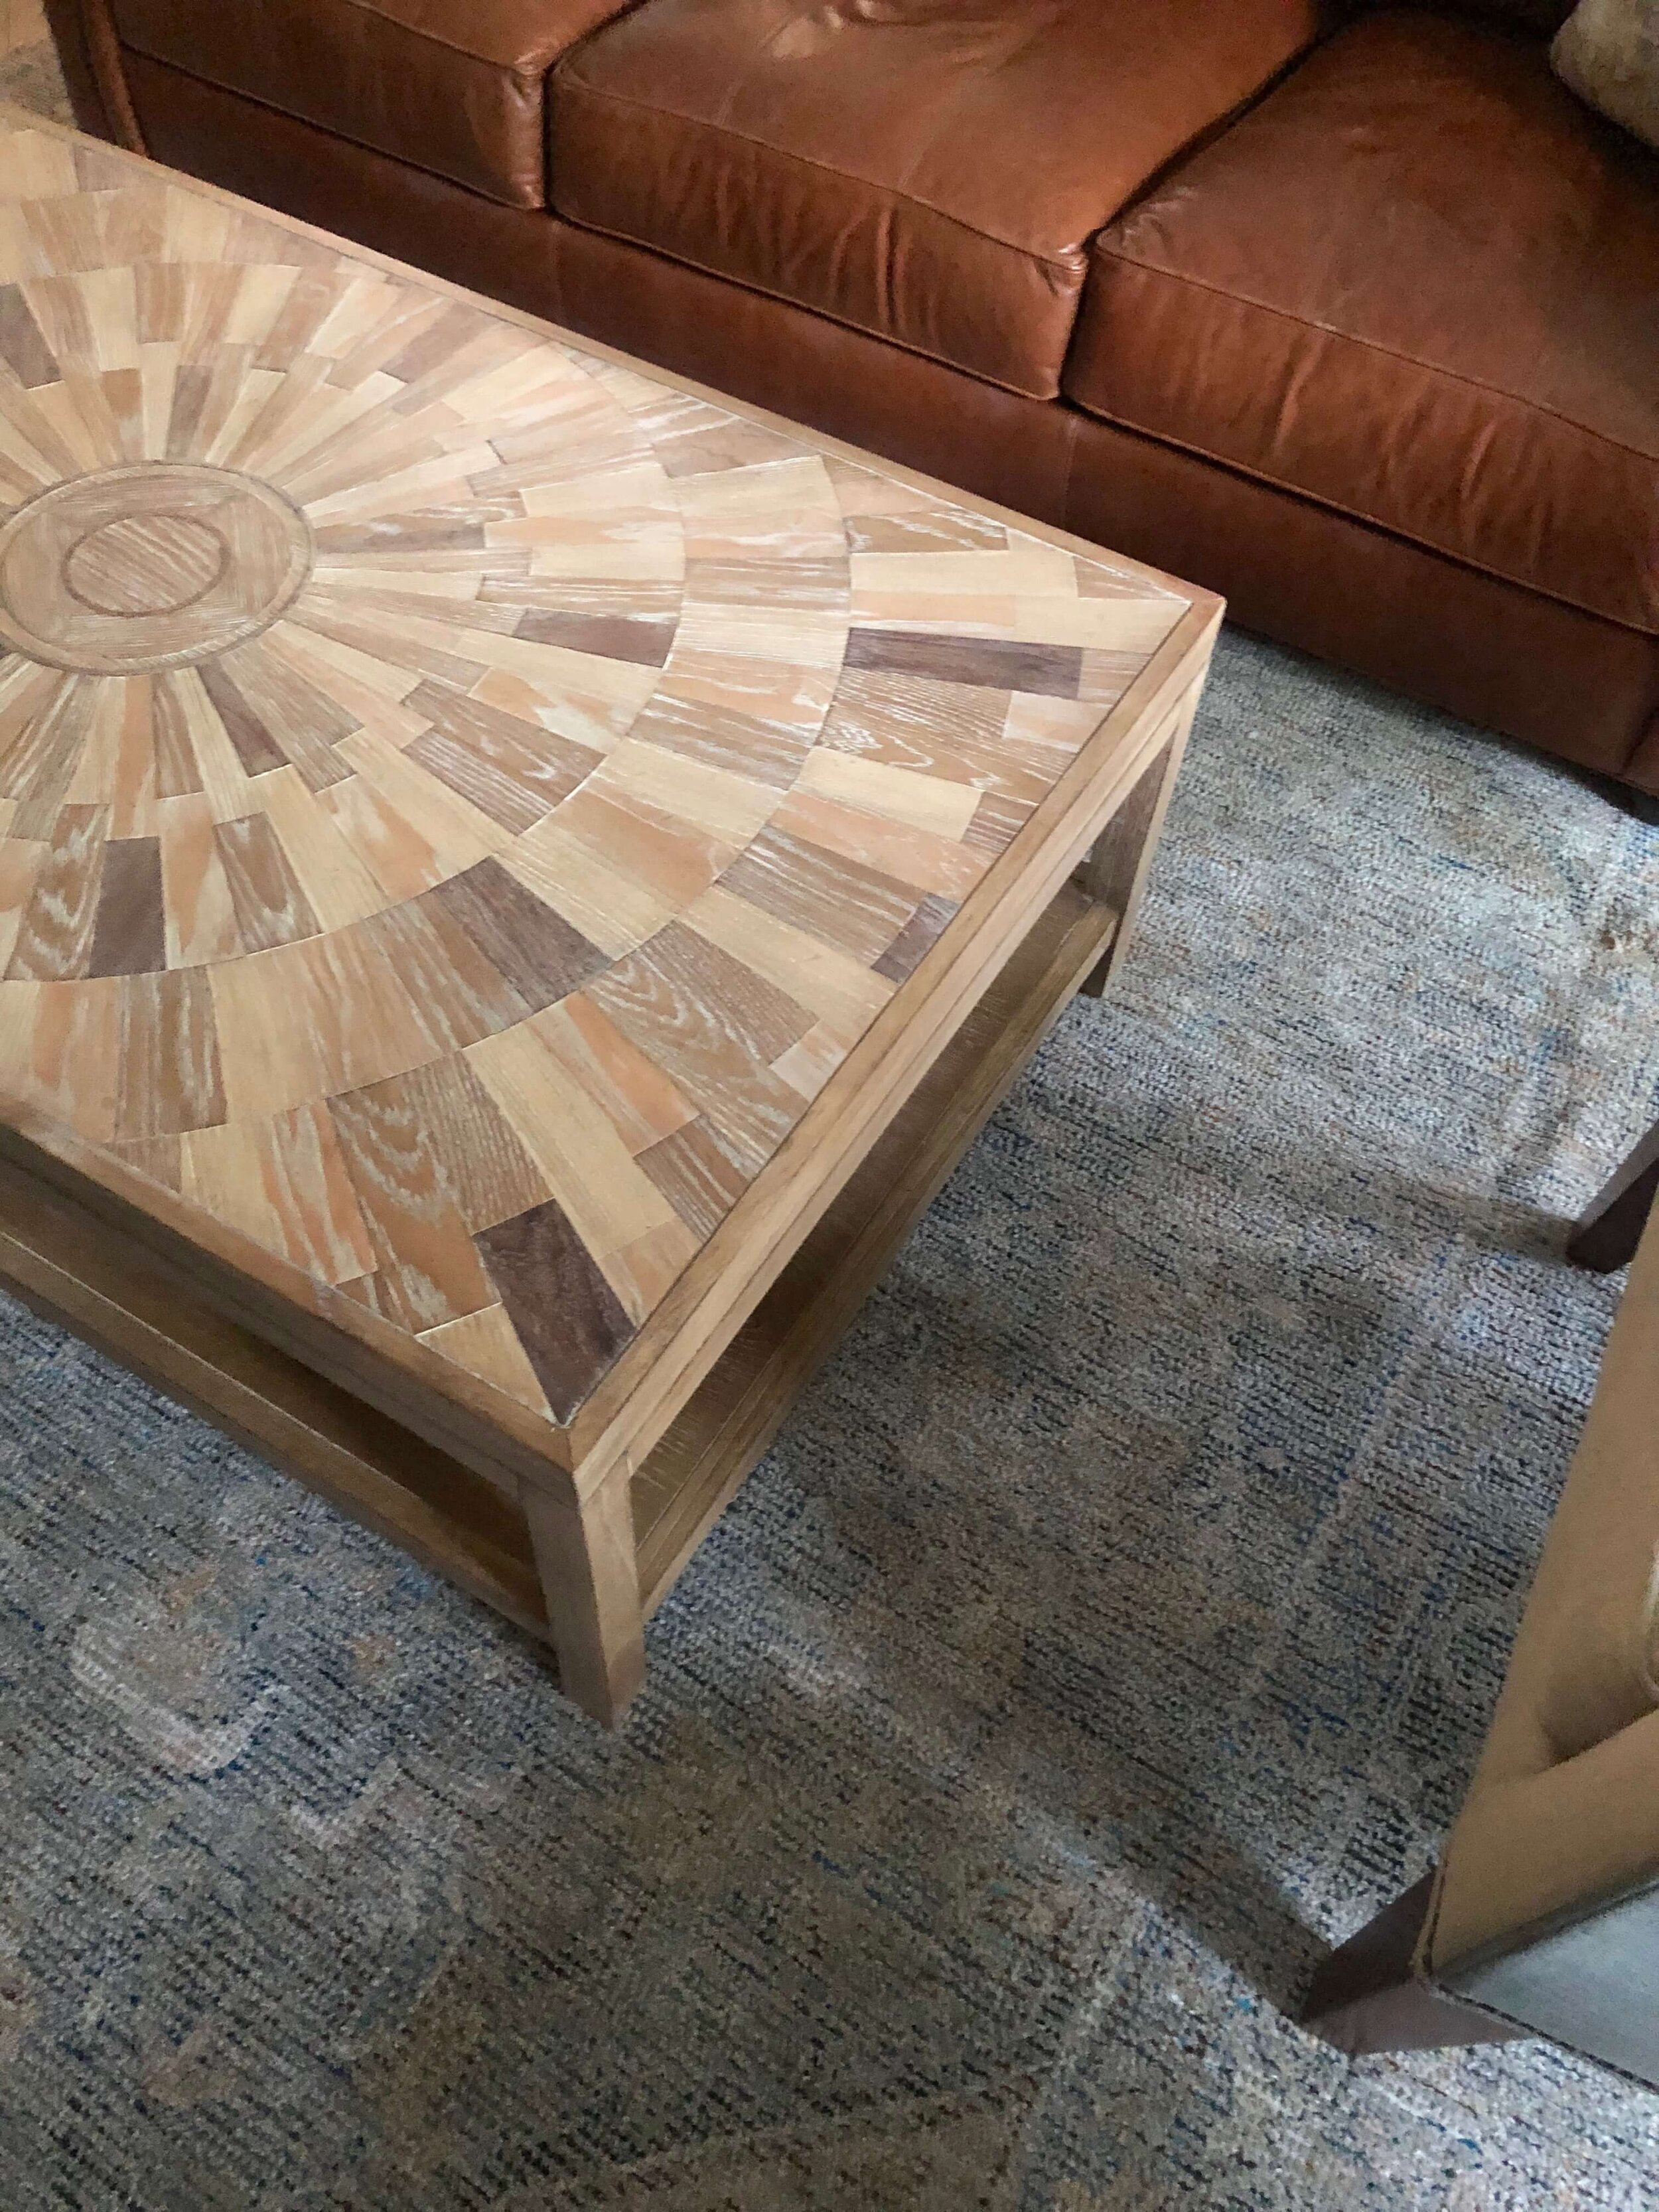 I really love this inlaid wood coffee table with the caramel leather sofa and subtly patterned blue green rug. This will be great when all finished up!